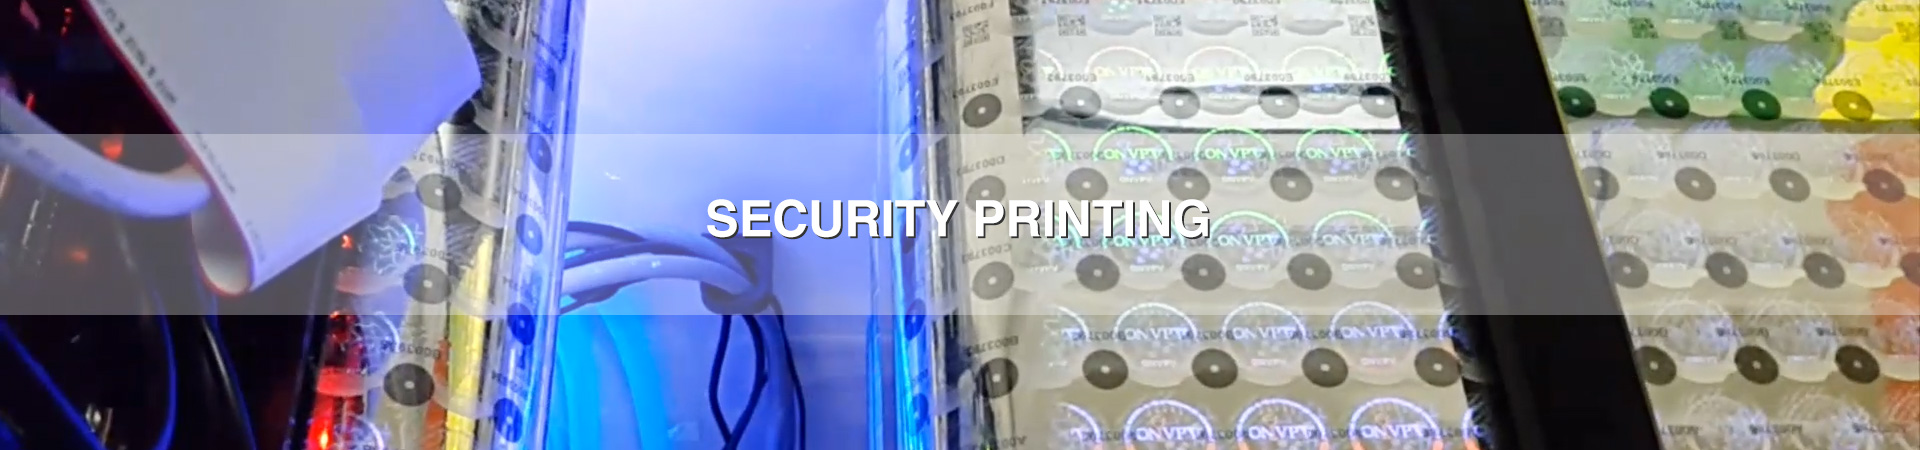 Security Printing